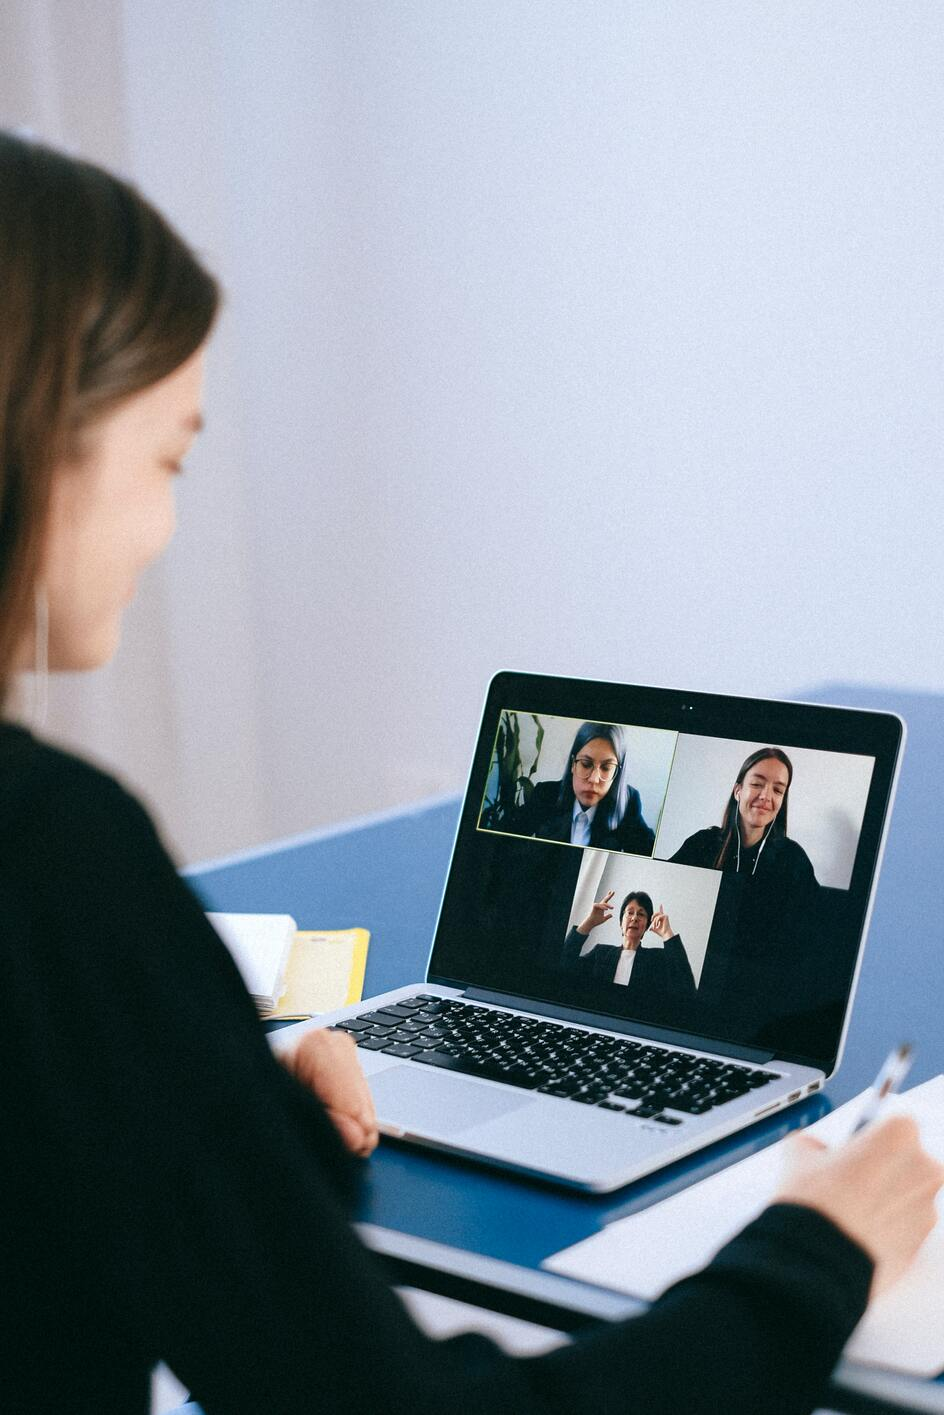 A virtual team meeting